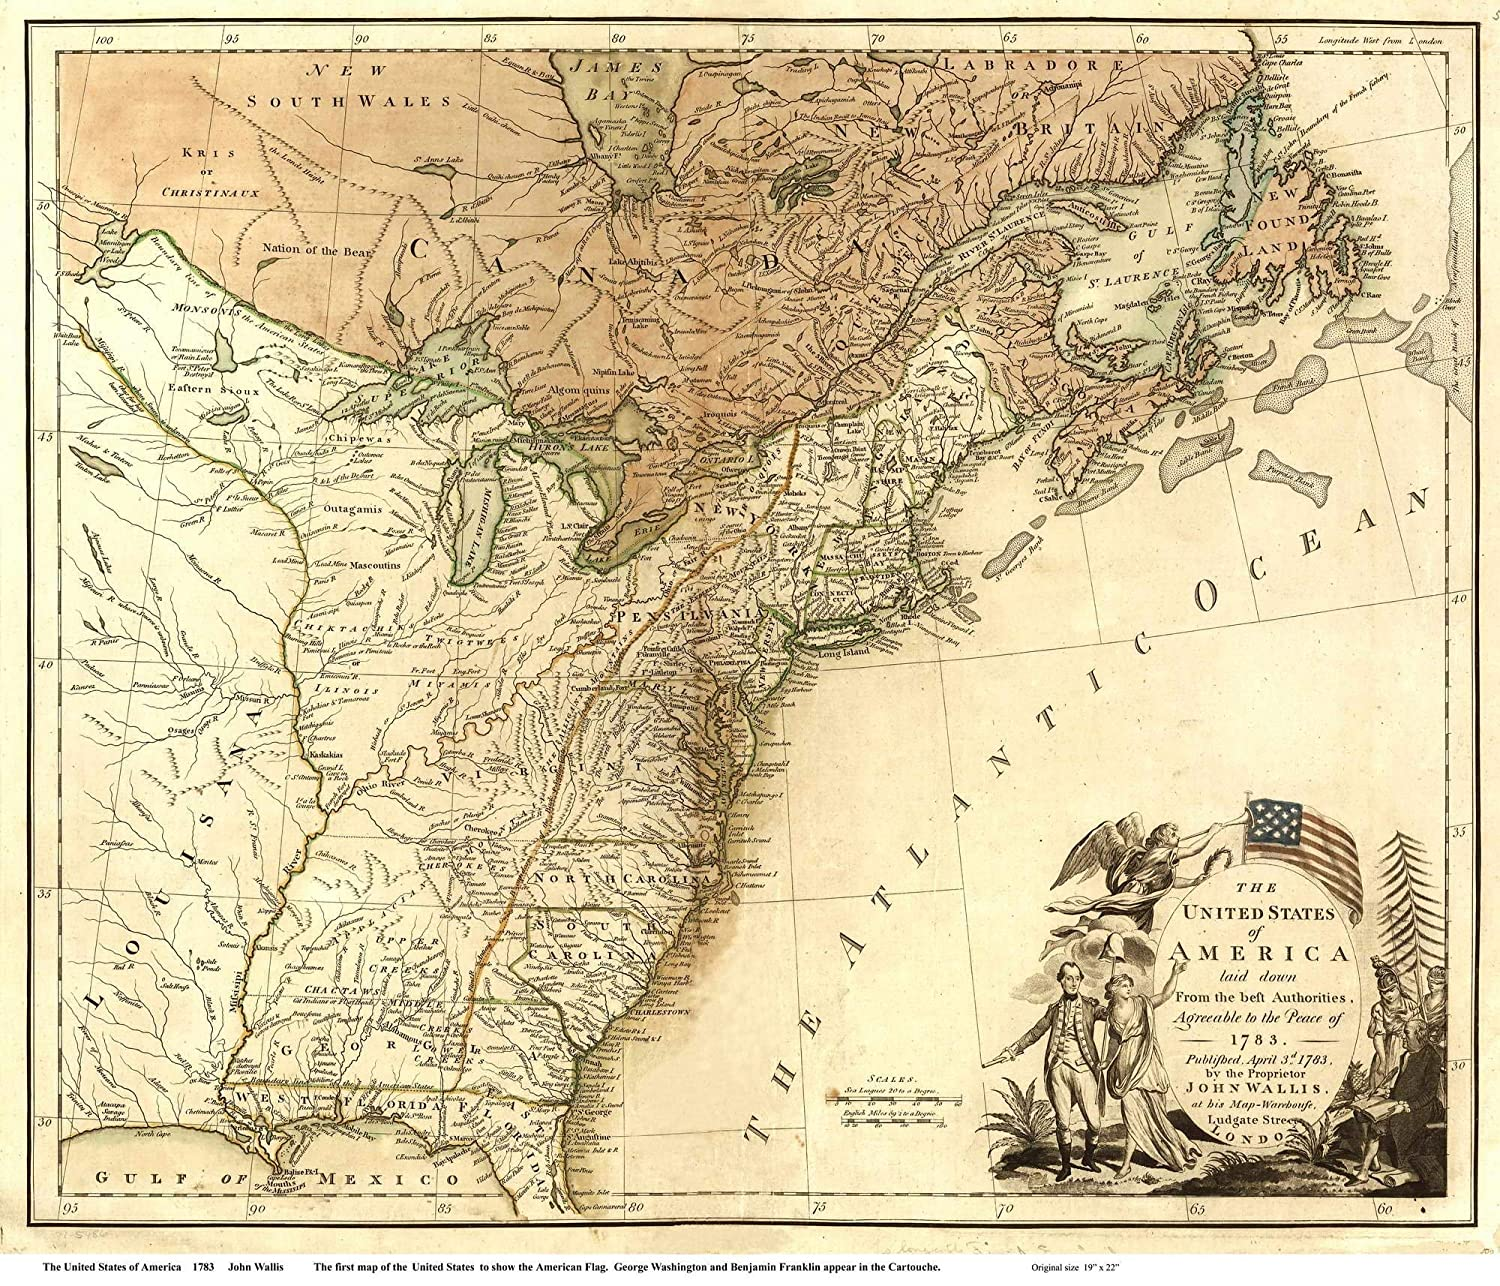 Amazon.com: The United States of America 1783 Map - USA ...